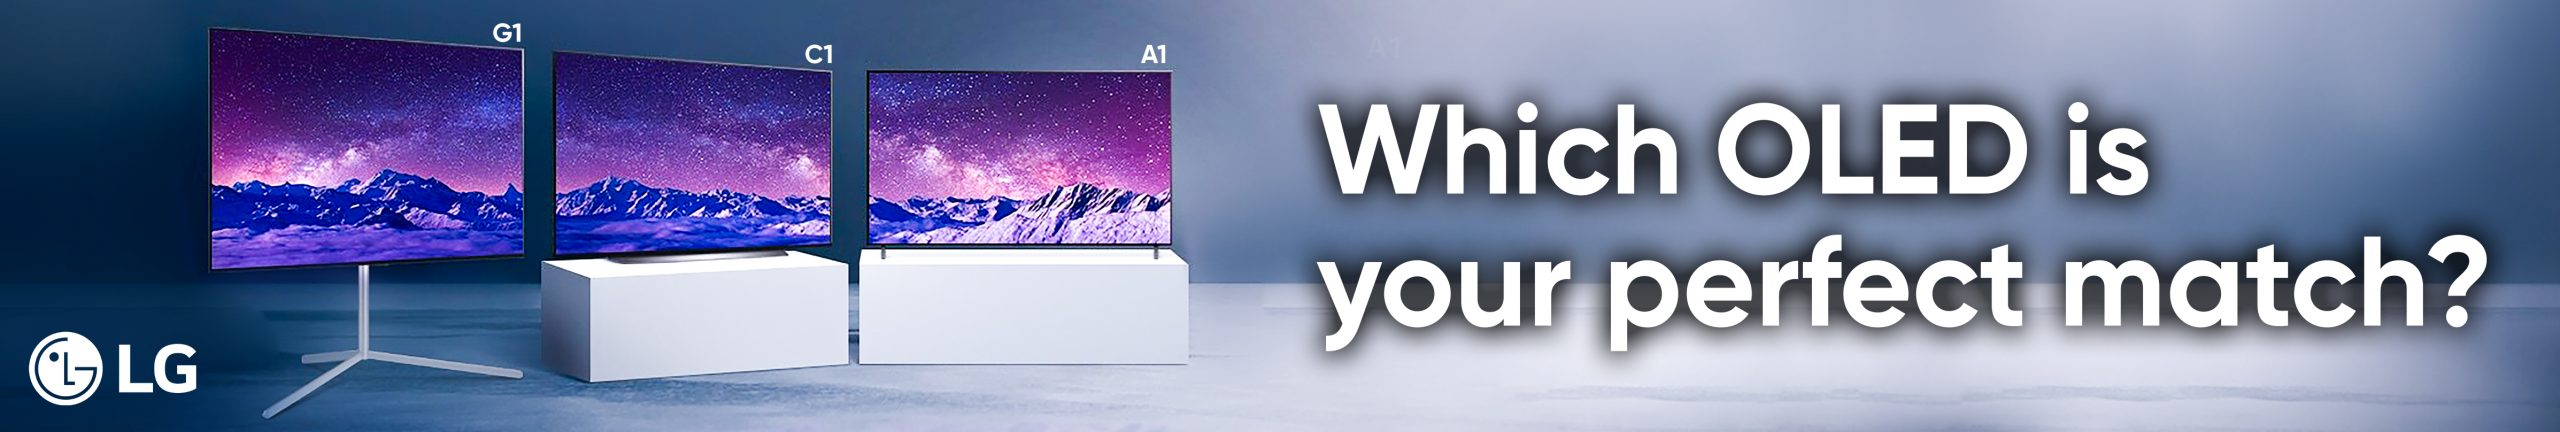 Which OLED LG